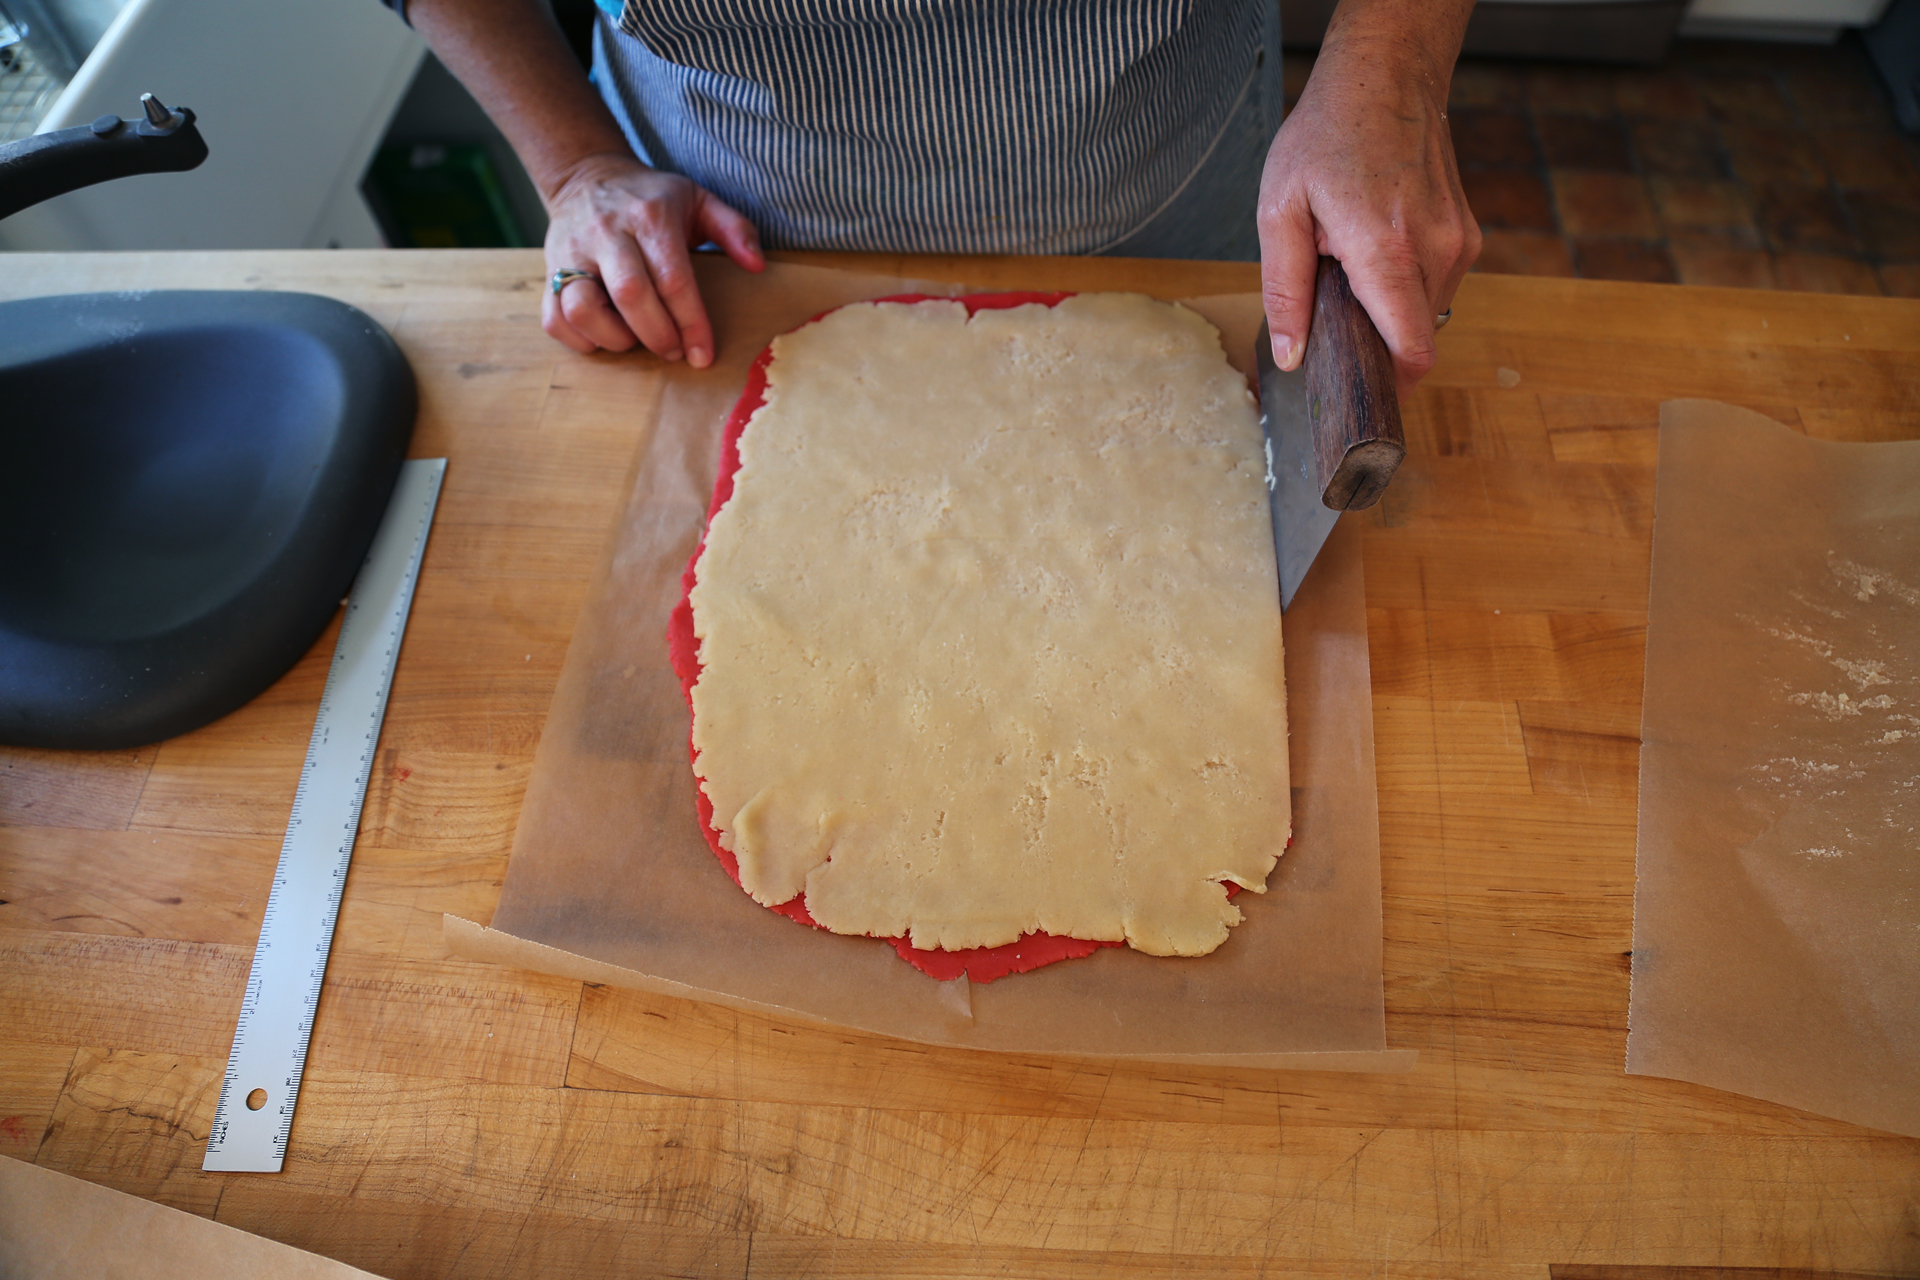 Trim the edges to even off the two rectangles of dough.